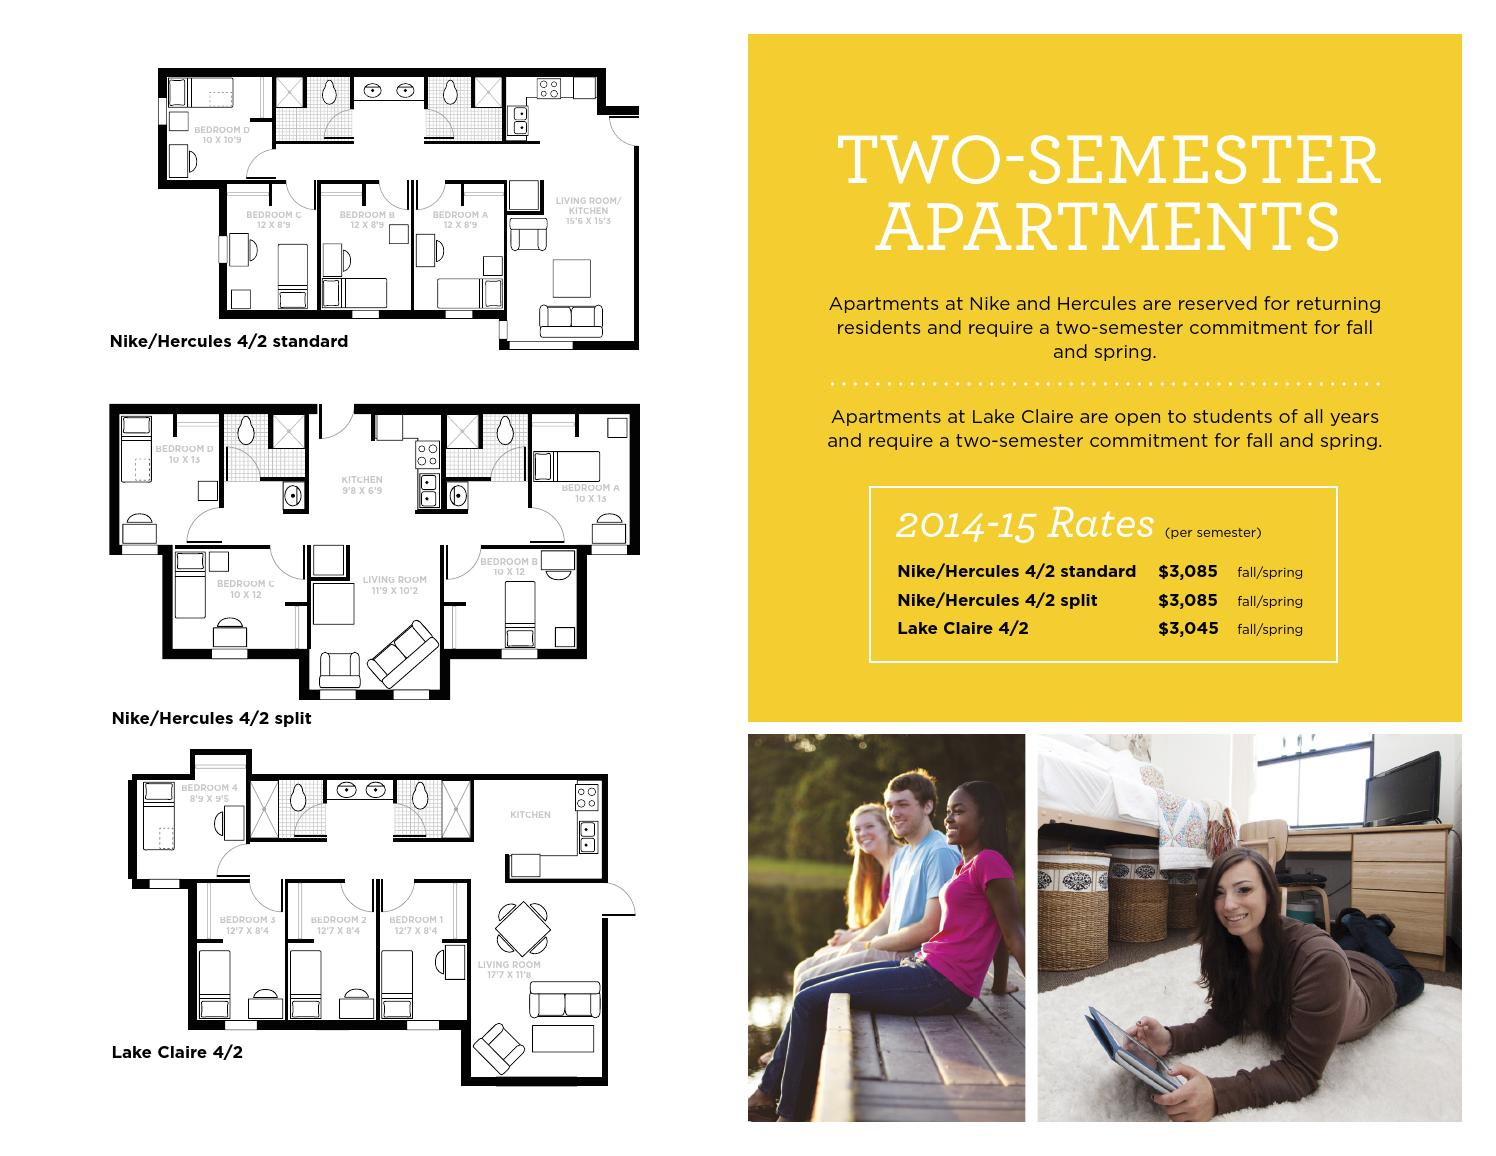 ucf housing floor plans 2014 15 by university of central florida page